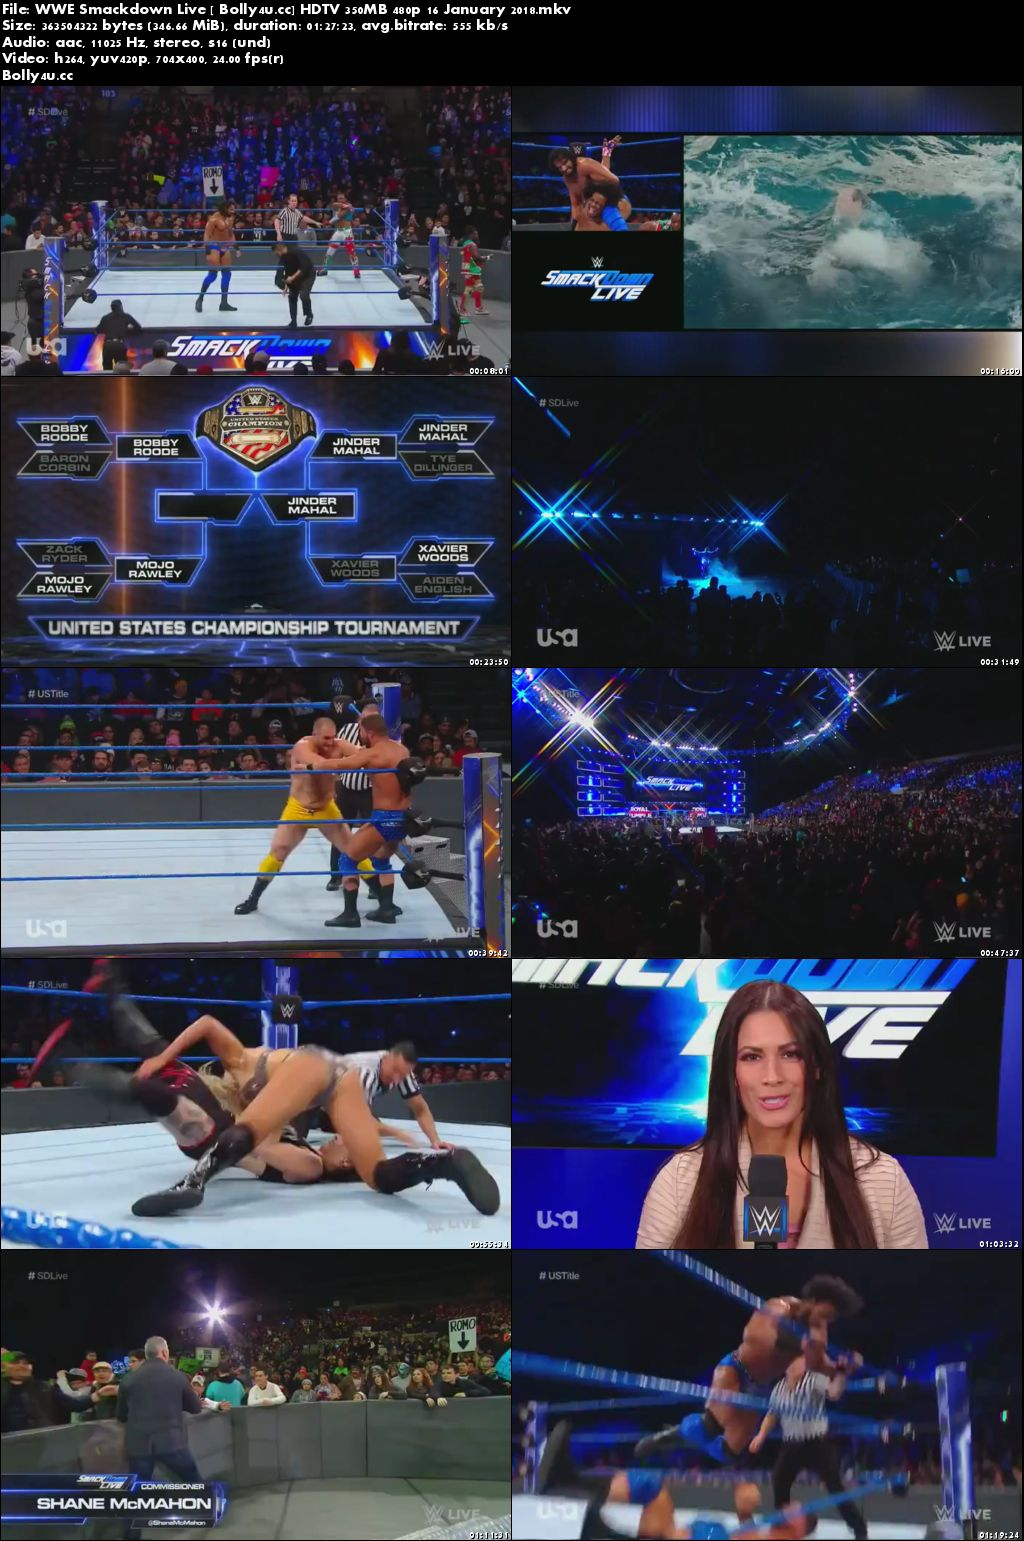 WWE Smackdown Live HDTV 350MB 480p 16 January 2018 Download